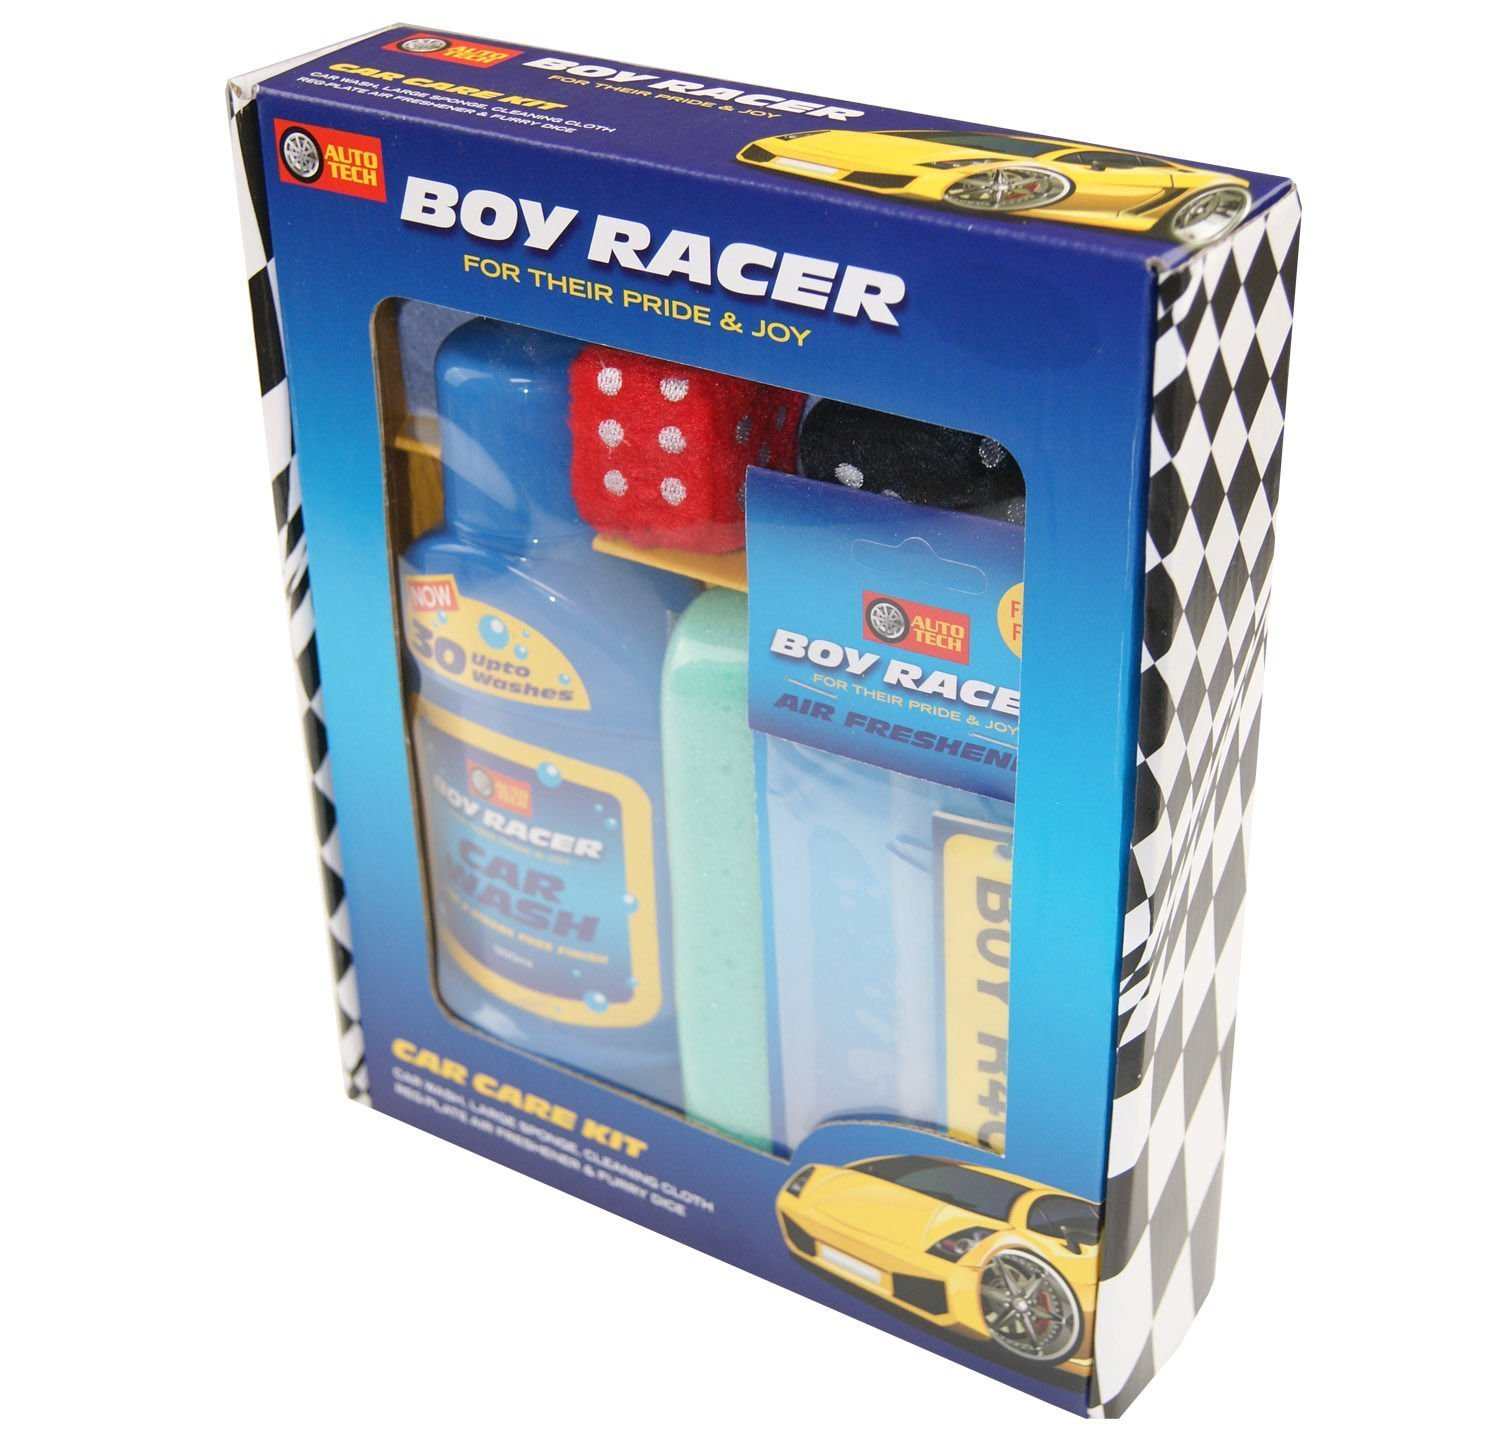 Boy Racer Blue Car Care Wash Kit Furry Dice Driving Test Dad Brother Xmas Gift Auto-Tech